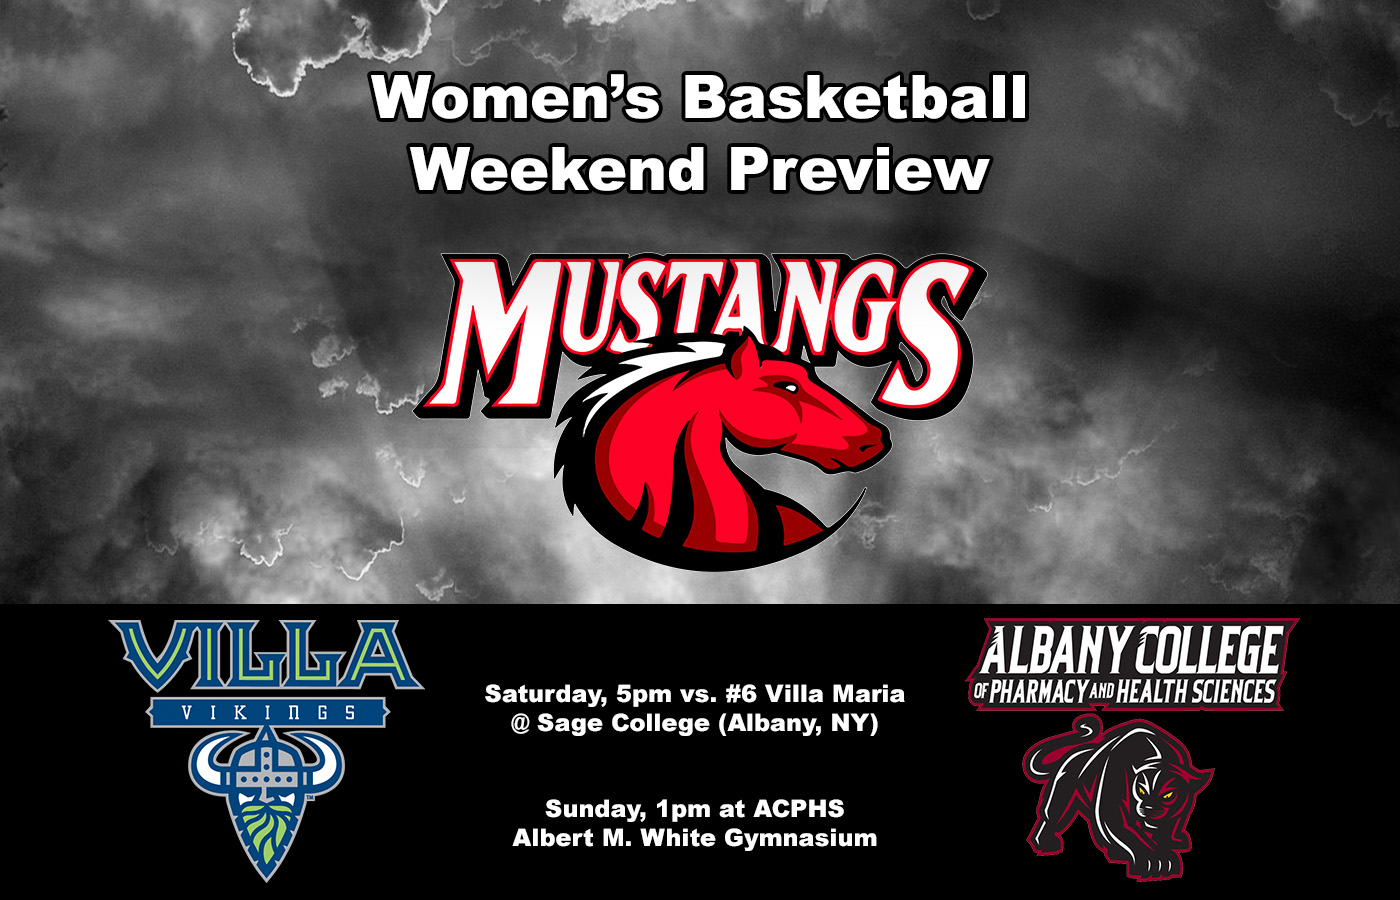 Women's Basketball heading to Albany, NY for weekend double-header